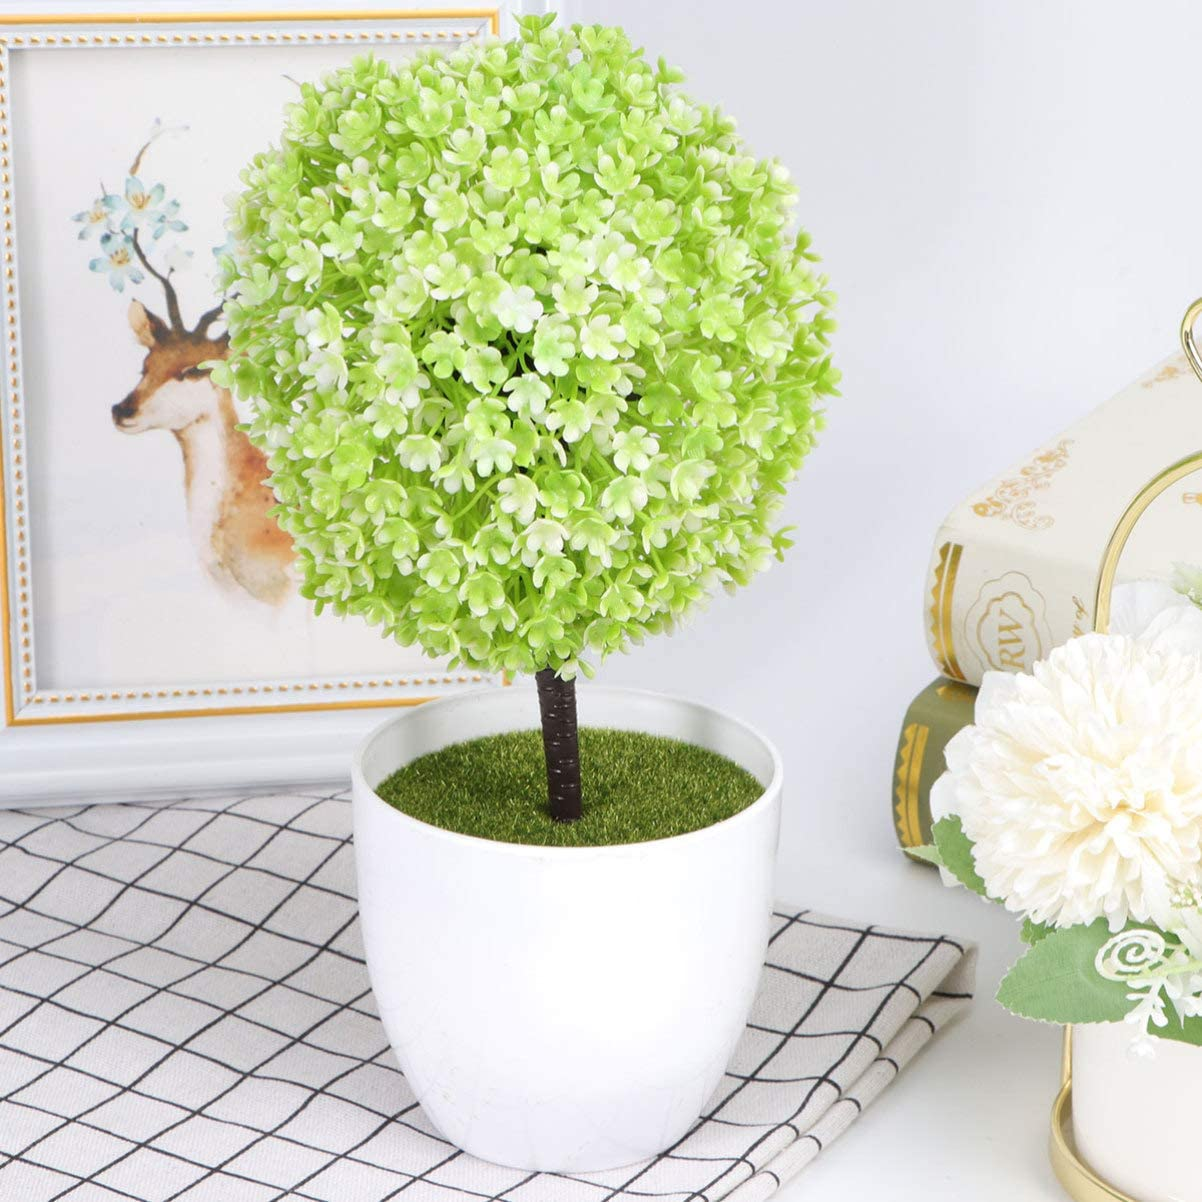 Garneck Artificial Potted Popularity Plant Floral Simulated Max 54% OFF Topia Ball